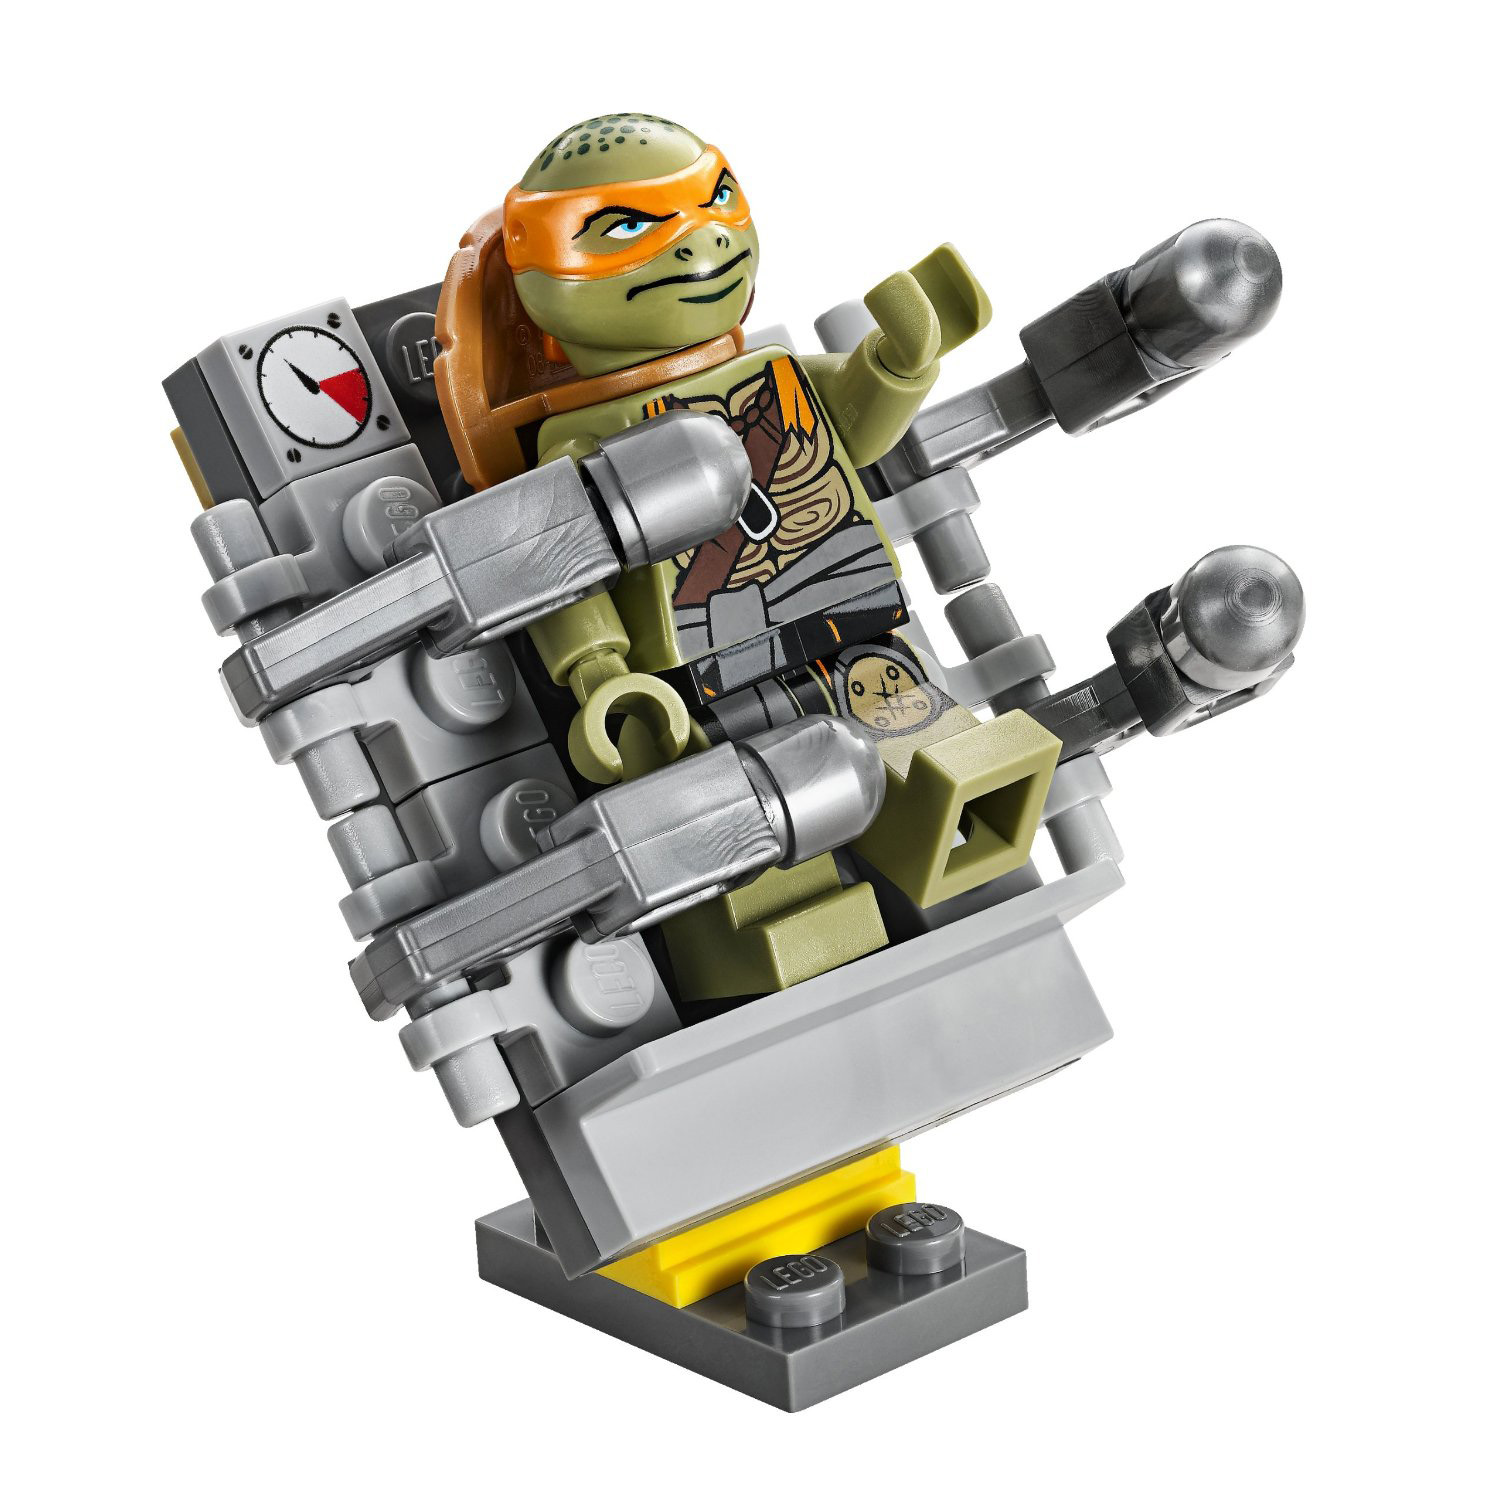 LEGO x Teenage Mutant Ninja Turtles Movie Set 5